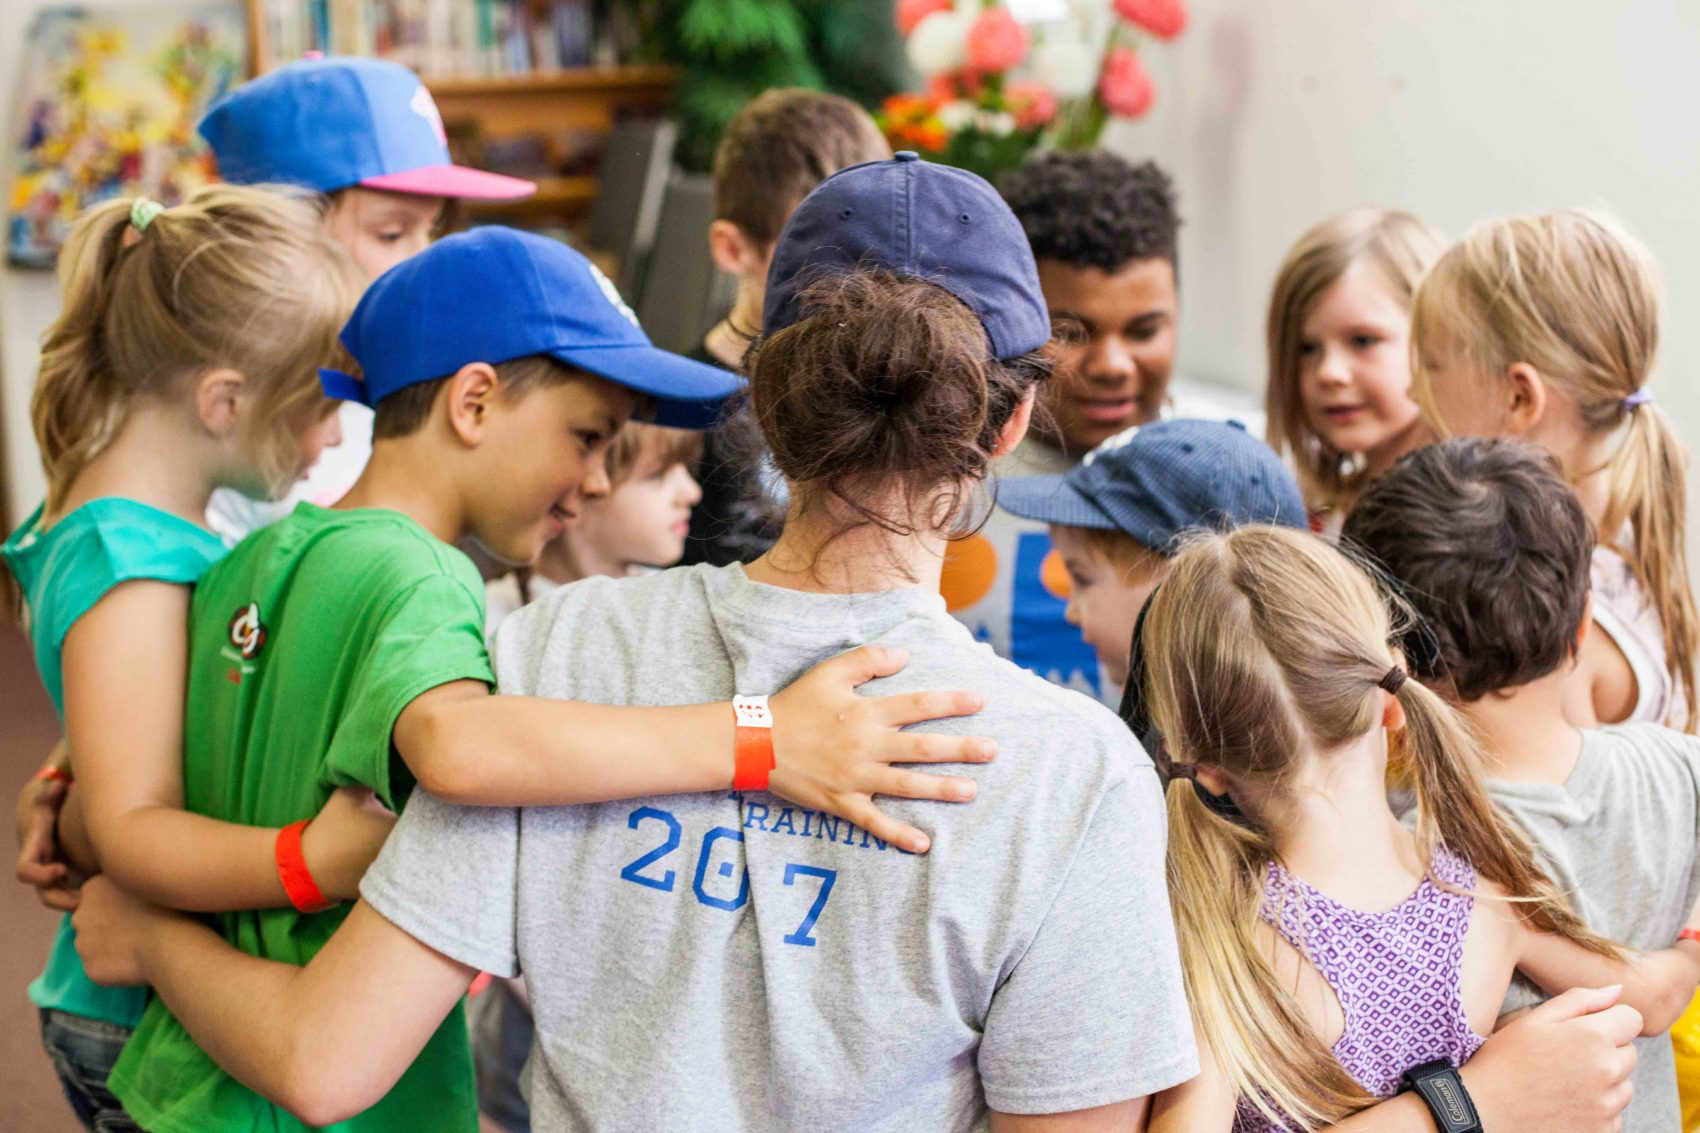 Staff and campers gather in a circle wrapping their arms around one another.